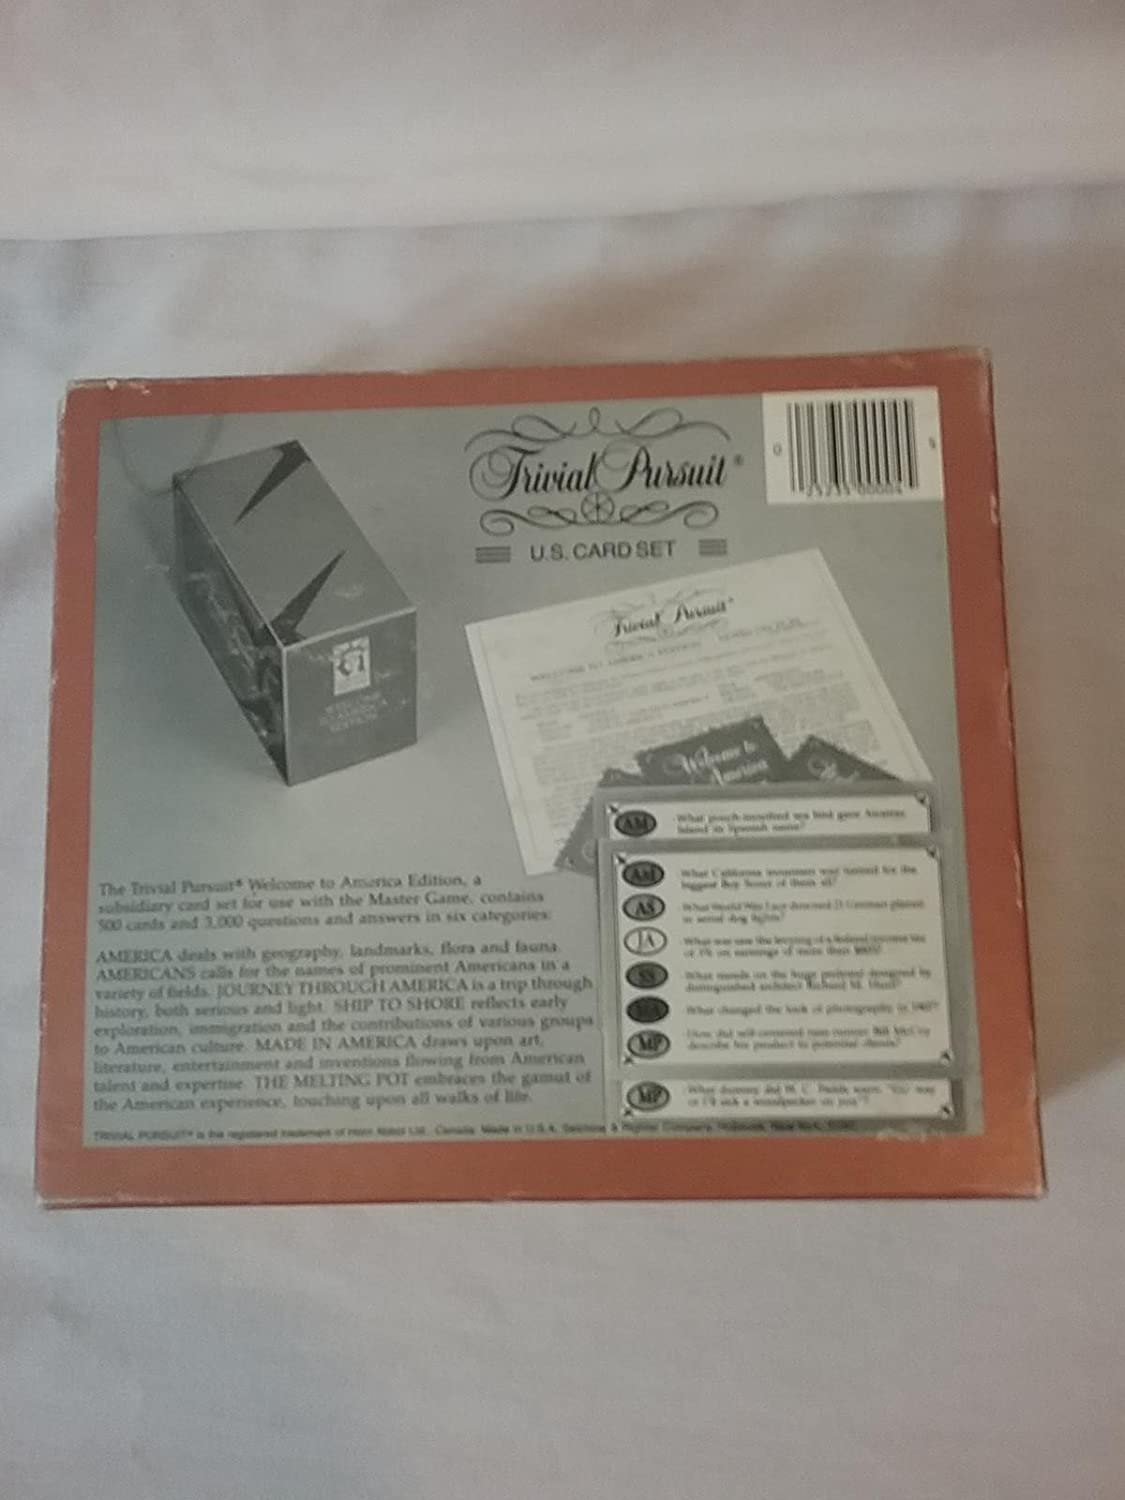 Horn Abbott LTD for use with the Master Game No Welcome to America Edition Card Set Trivial Pursuit 4